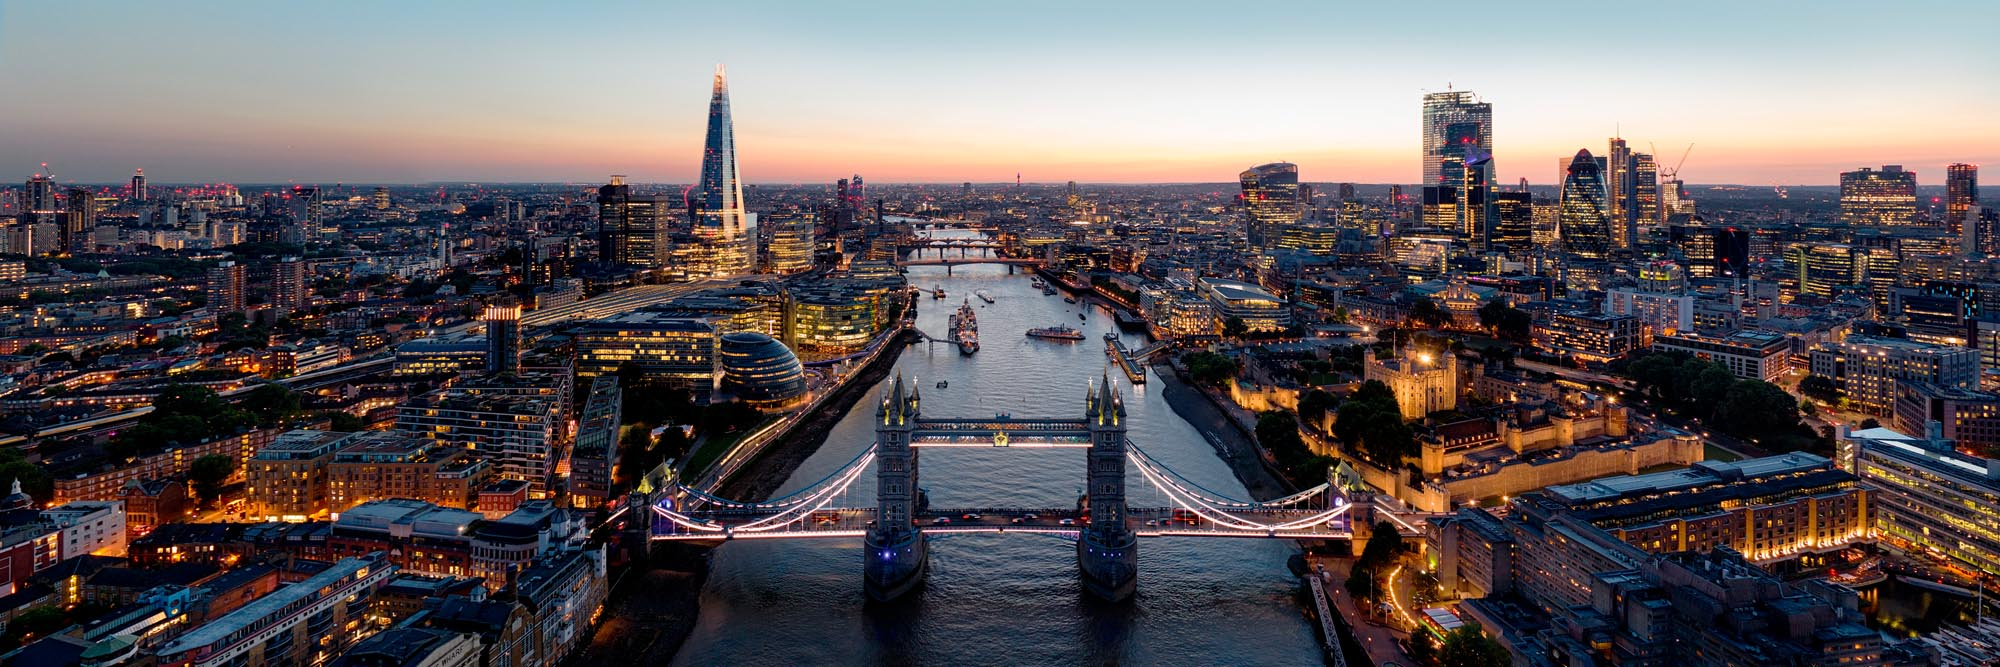 The thames at sunset in London